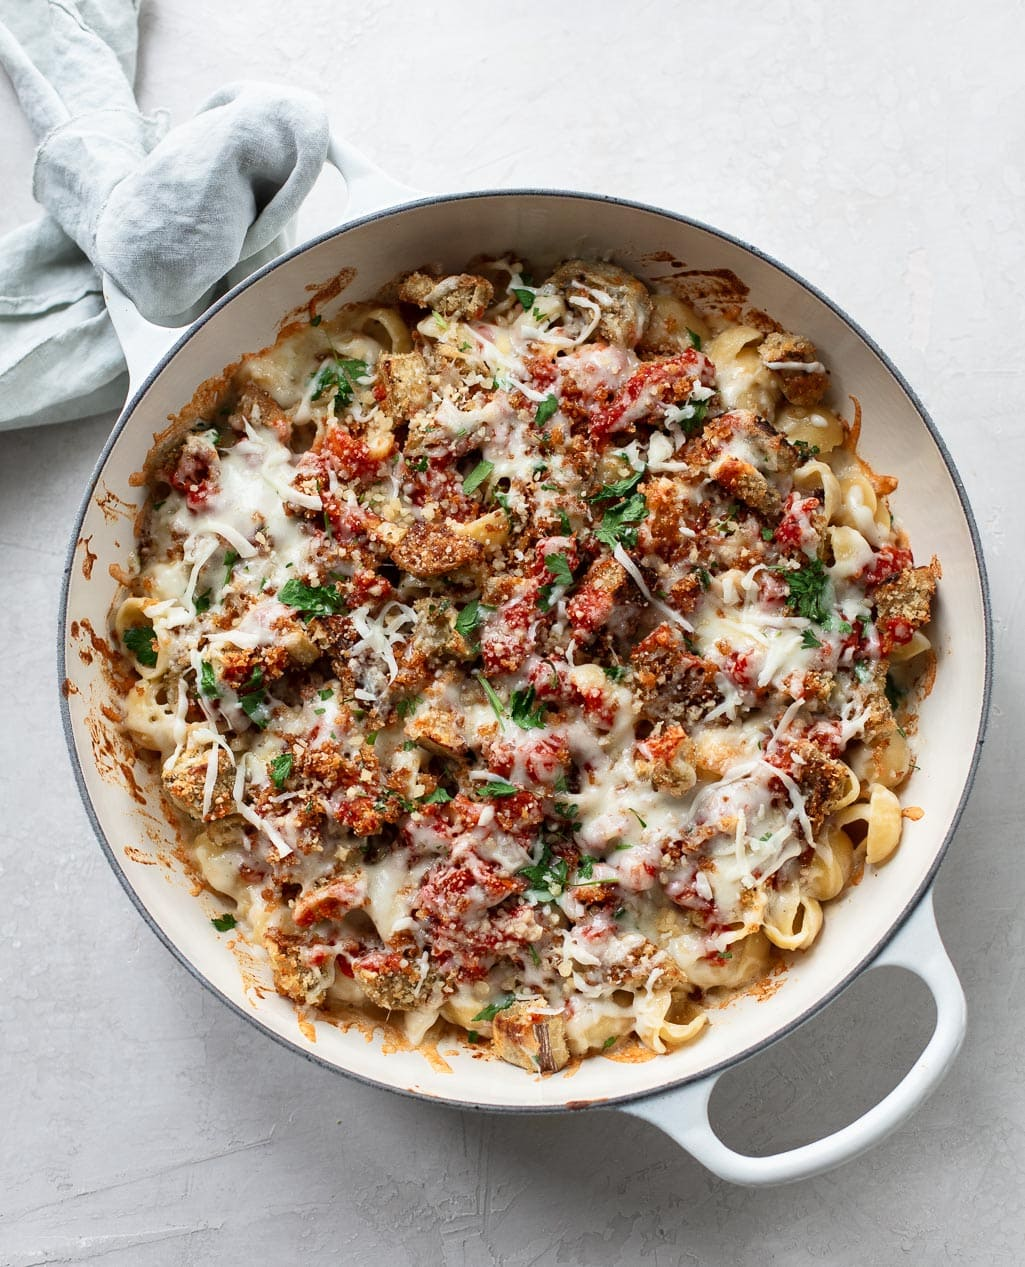 Baked Eggplant Parm Mac and Cheese